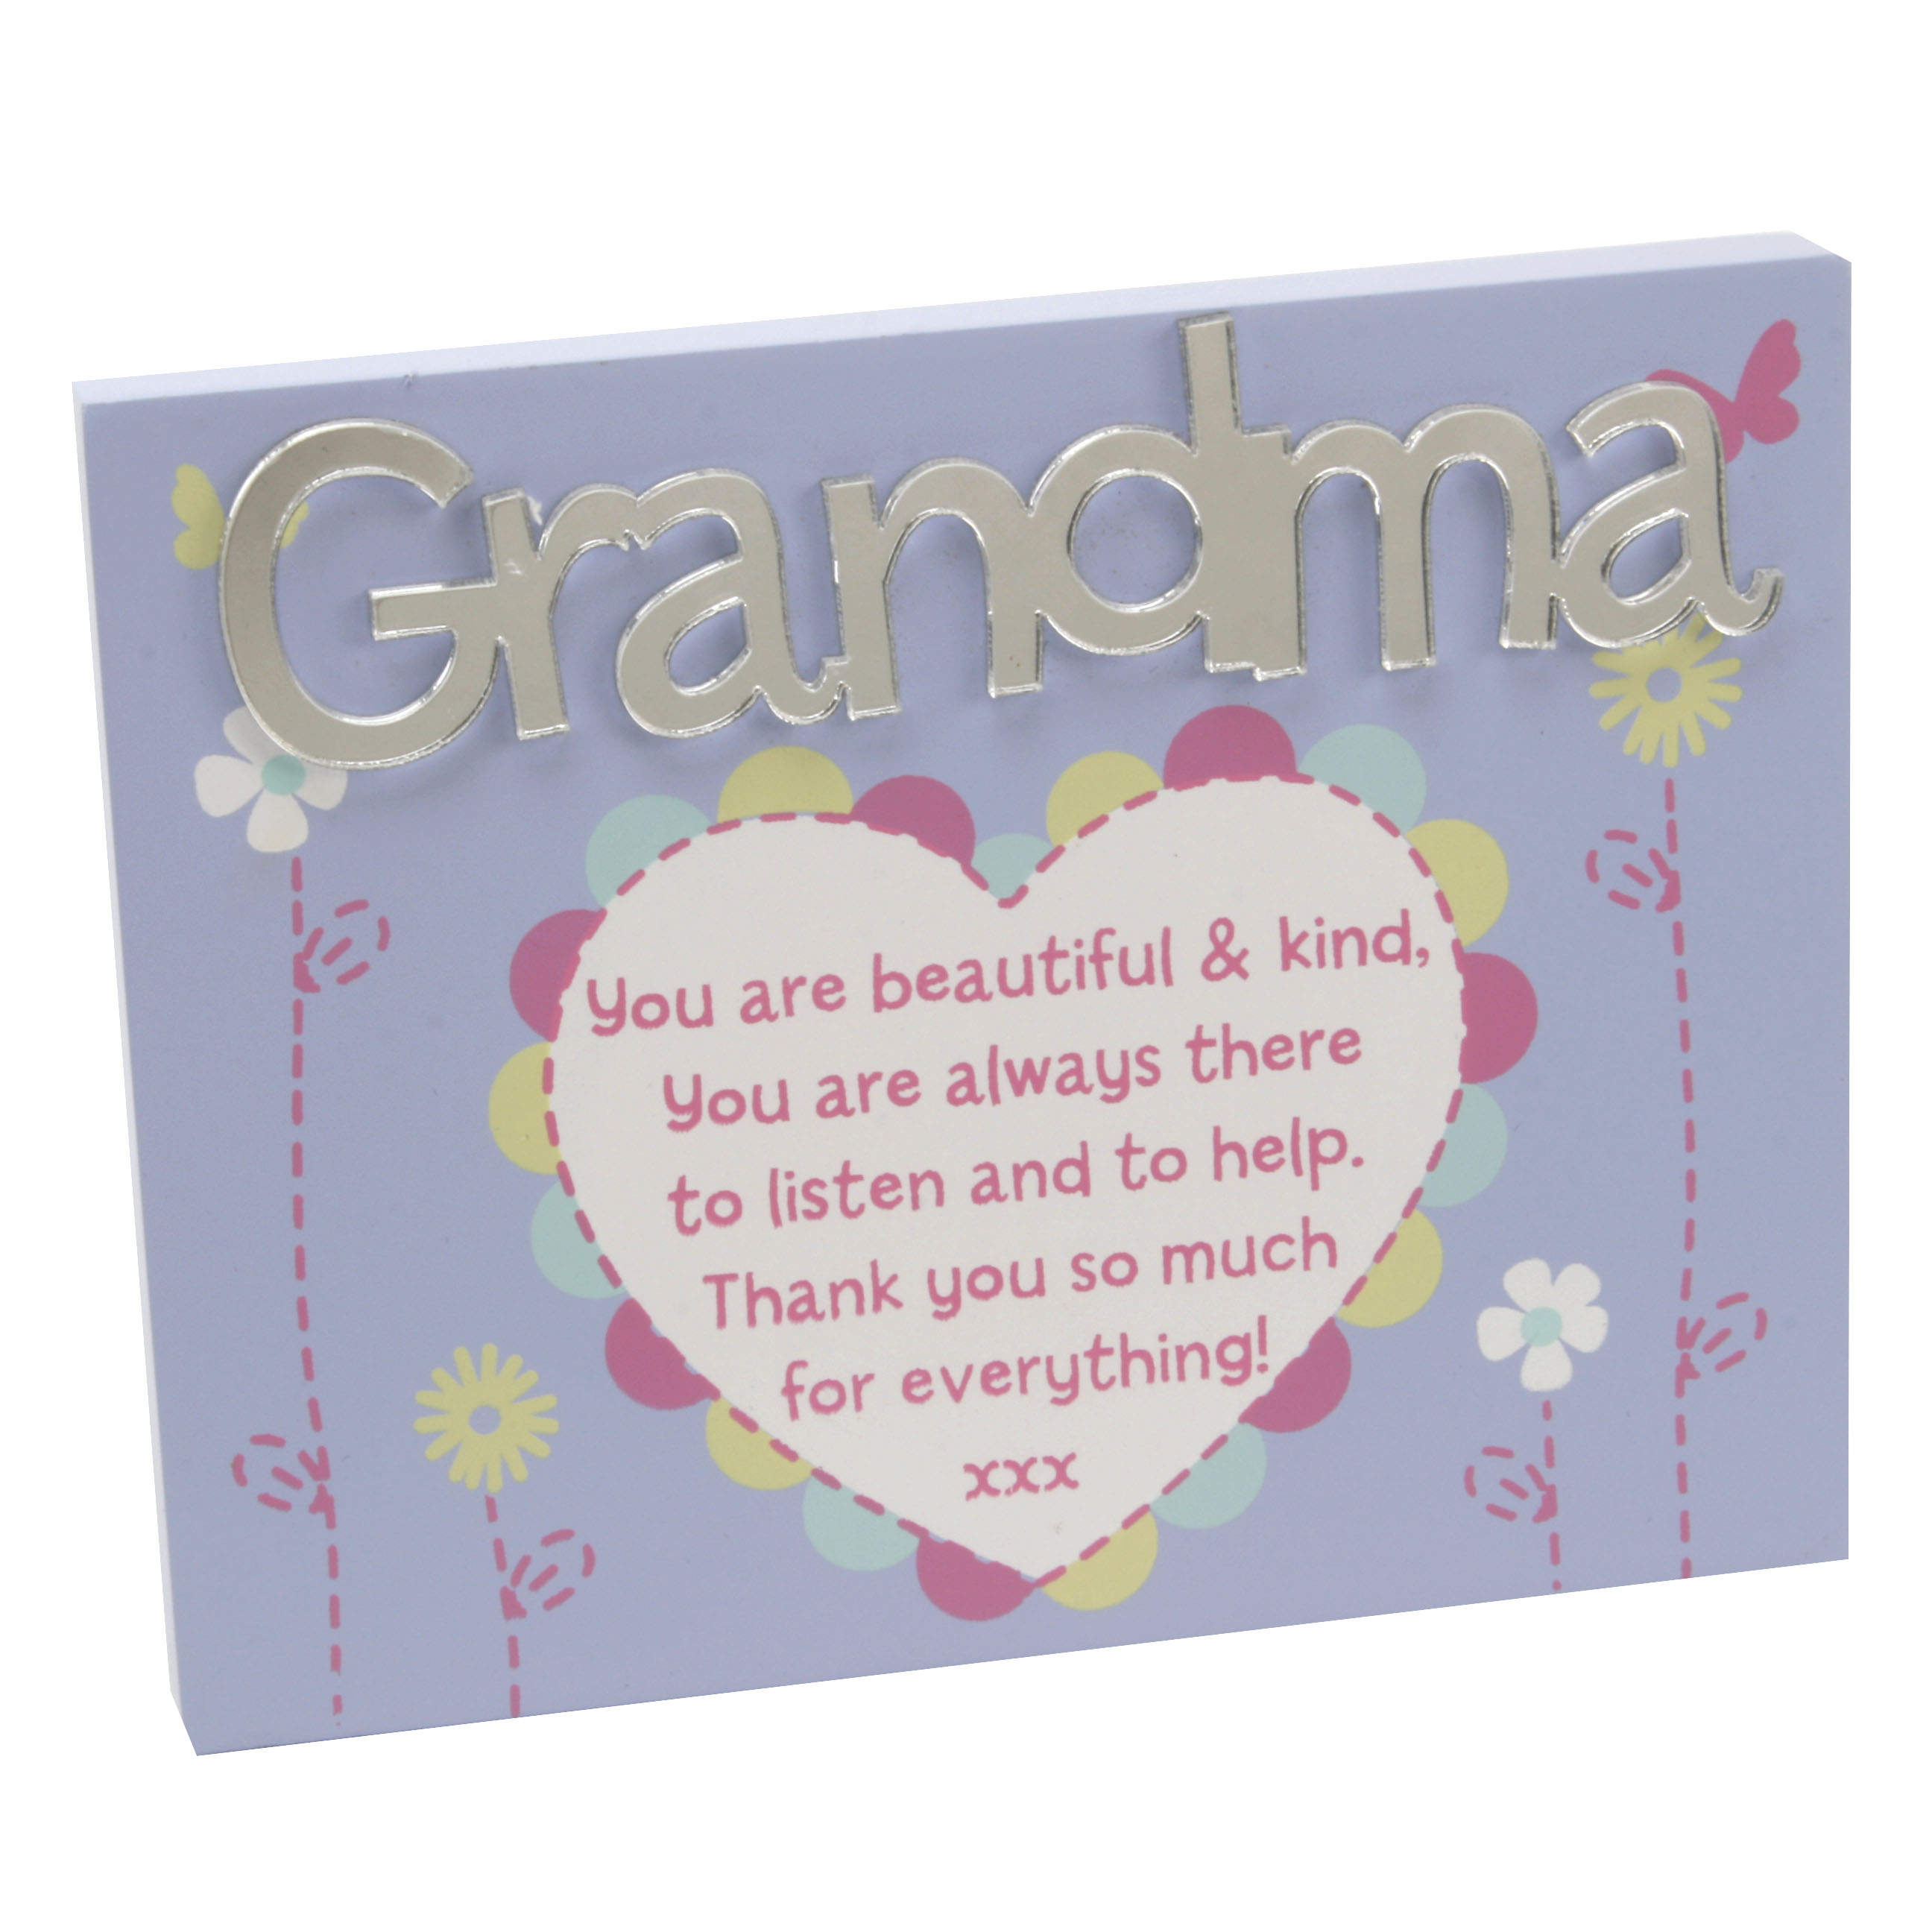 Grandma Plaque Lovely Mirror Words Verse Grandma Love Kates